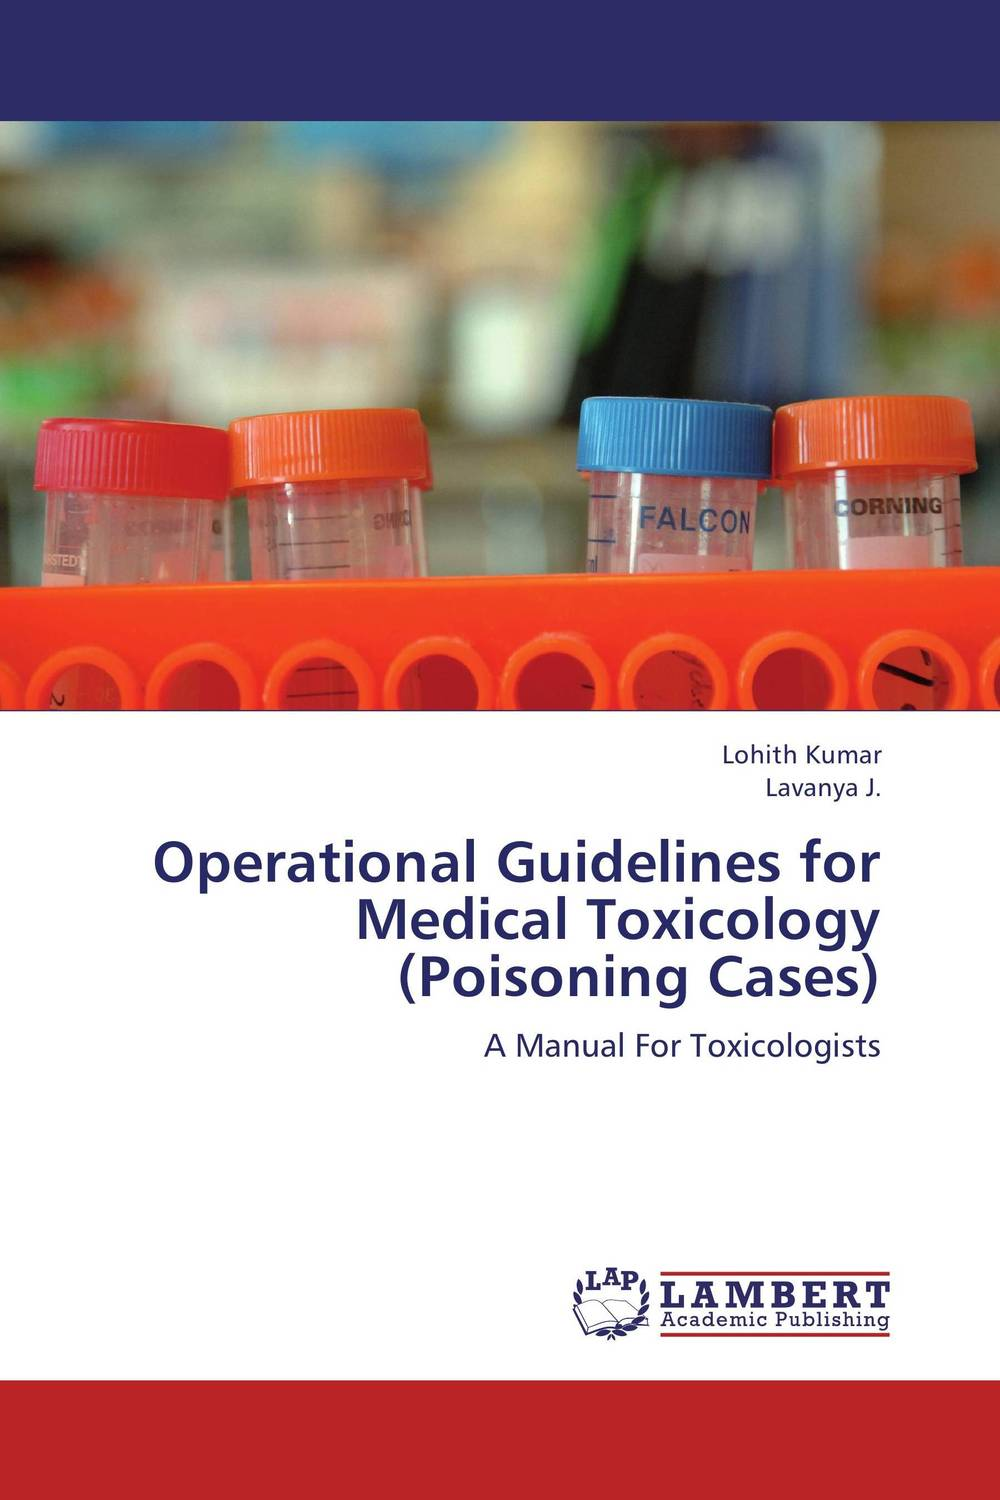 Operational Guidelines for Medical Toxicology (Poisoning Cases) autopsy autopsy tourniquets hacksaws and graves